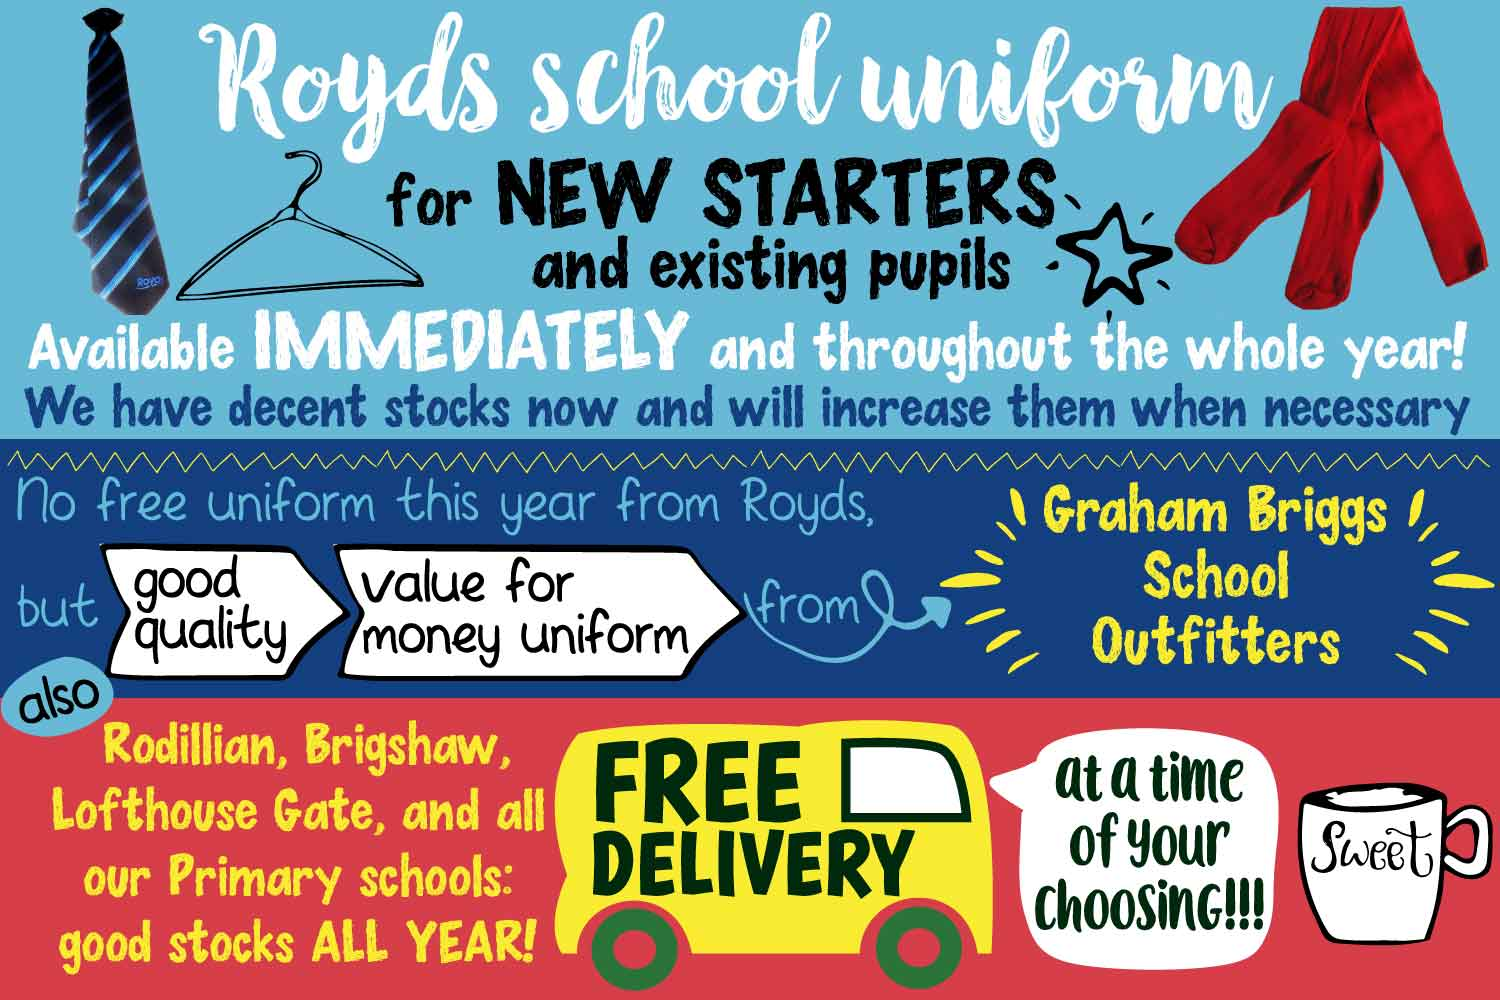 royds-uniform-new-starters